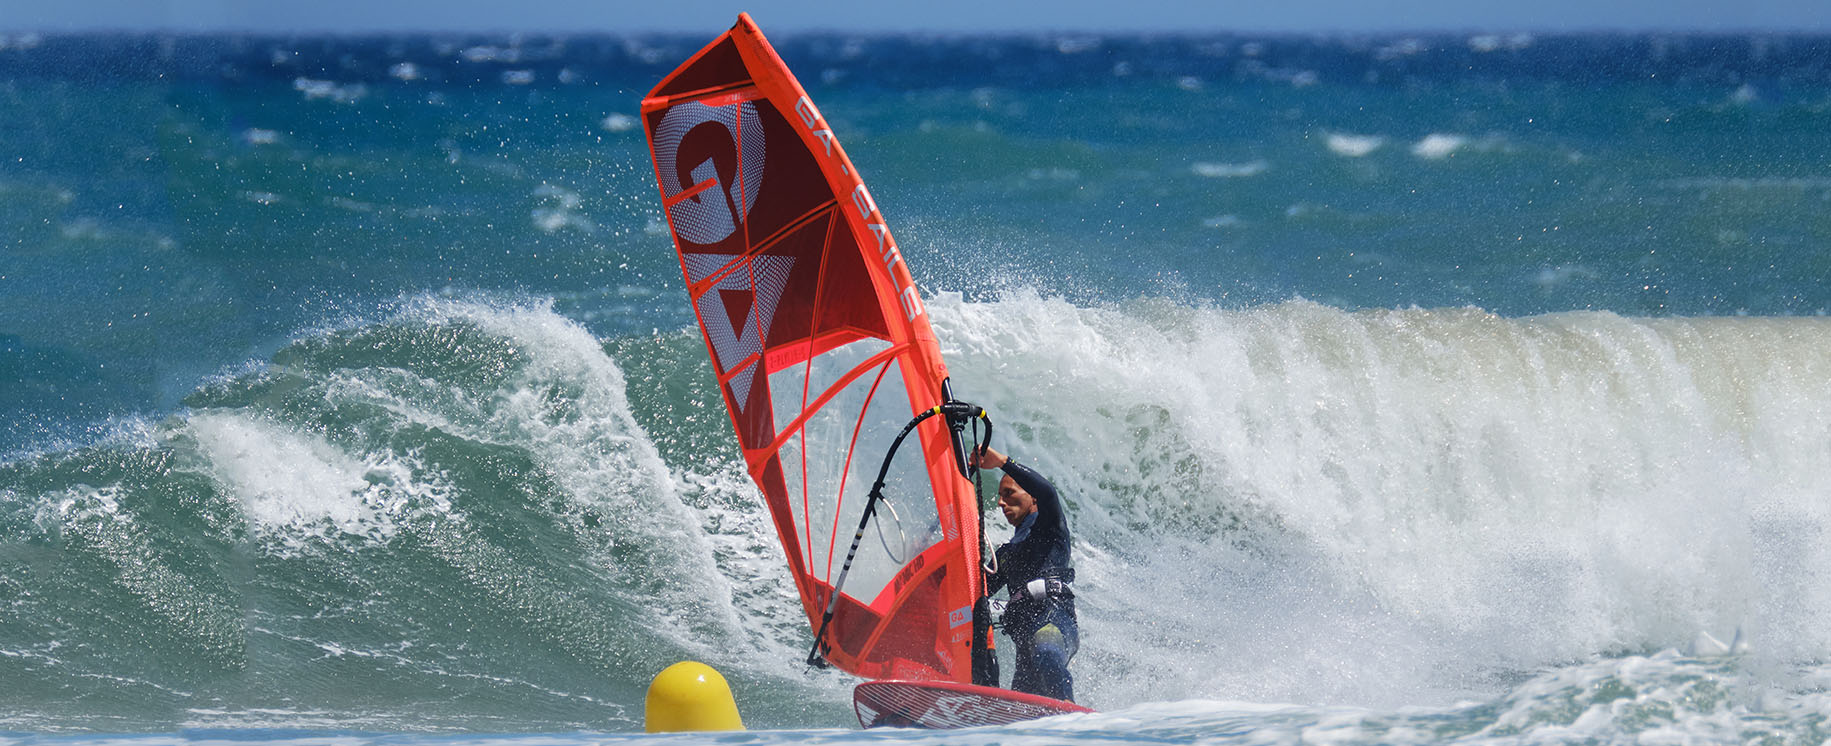 Hawaï à Canet en Roussillon, une session windsurf d'exception